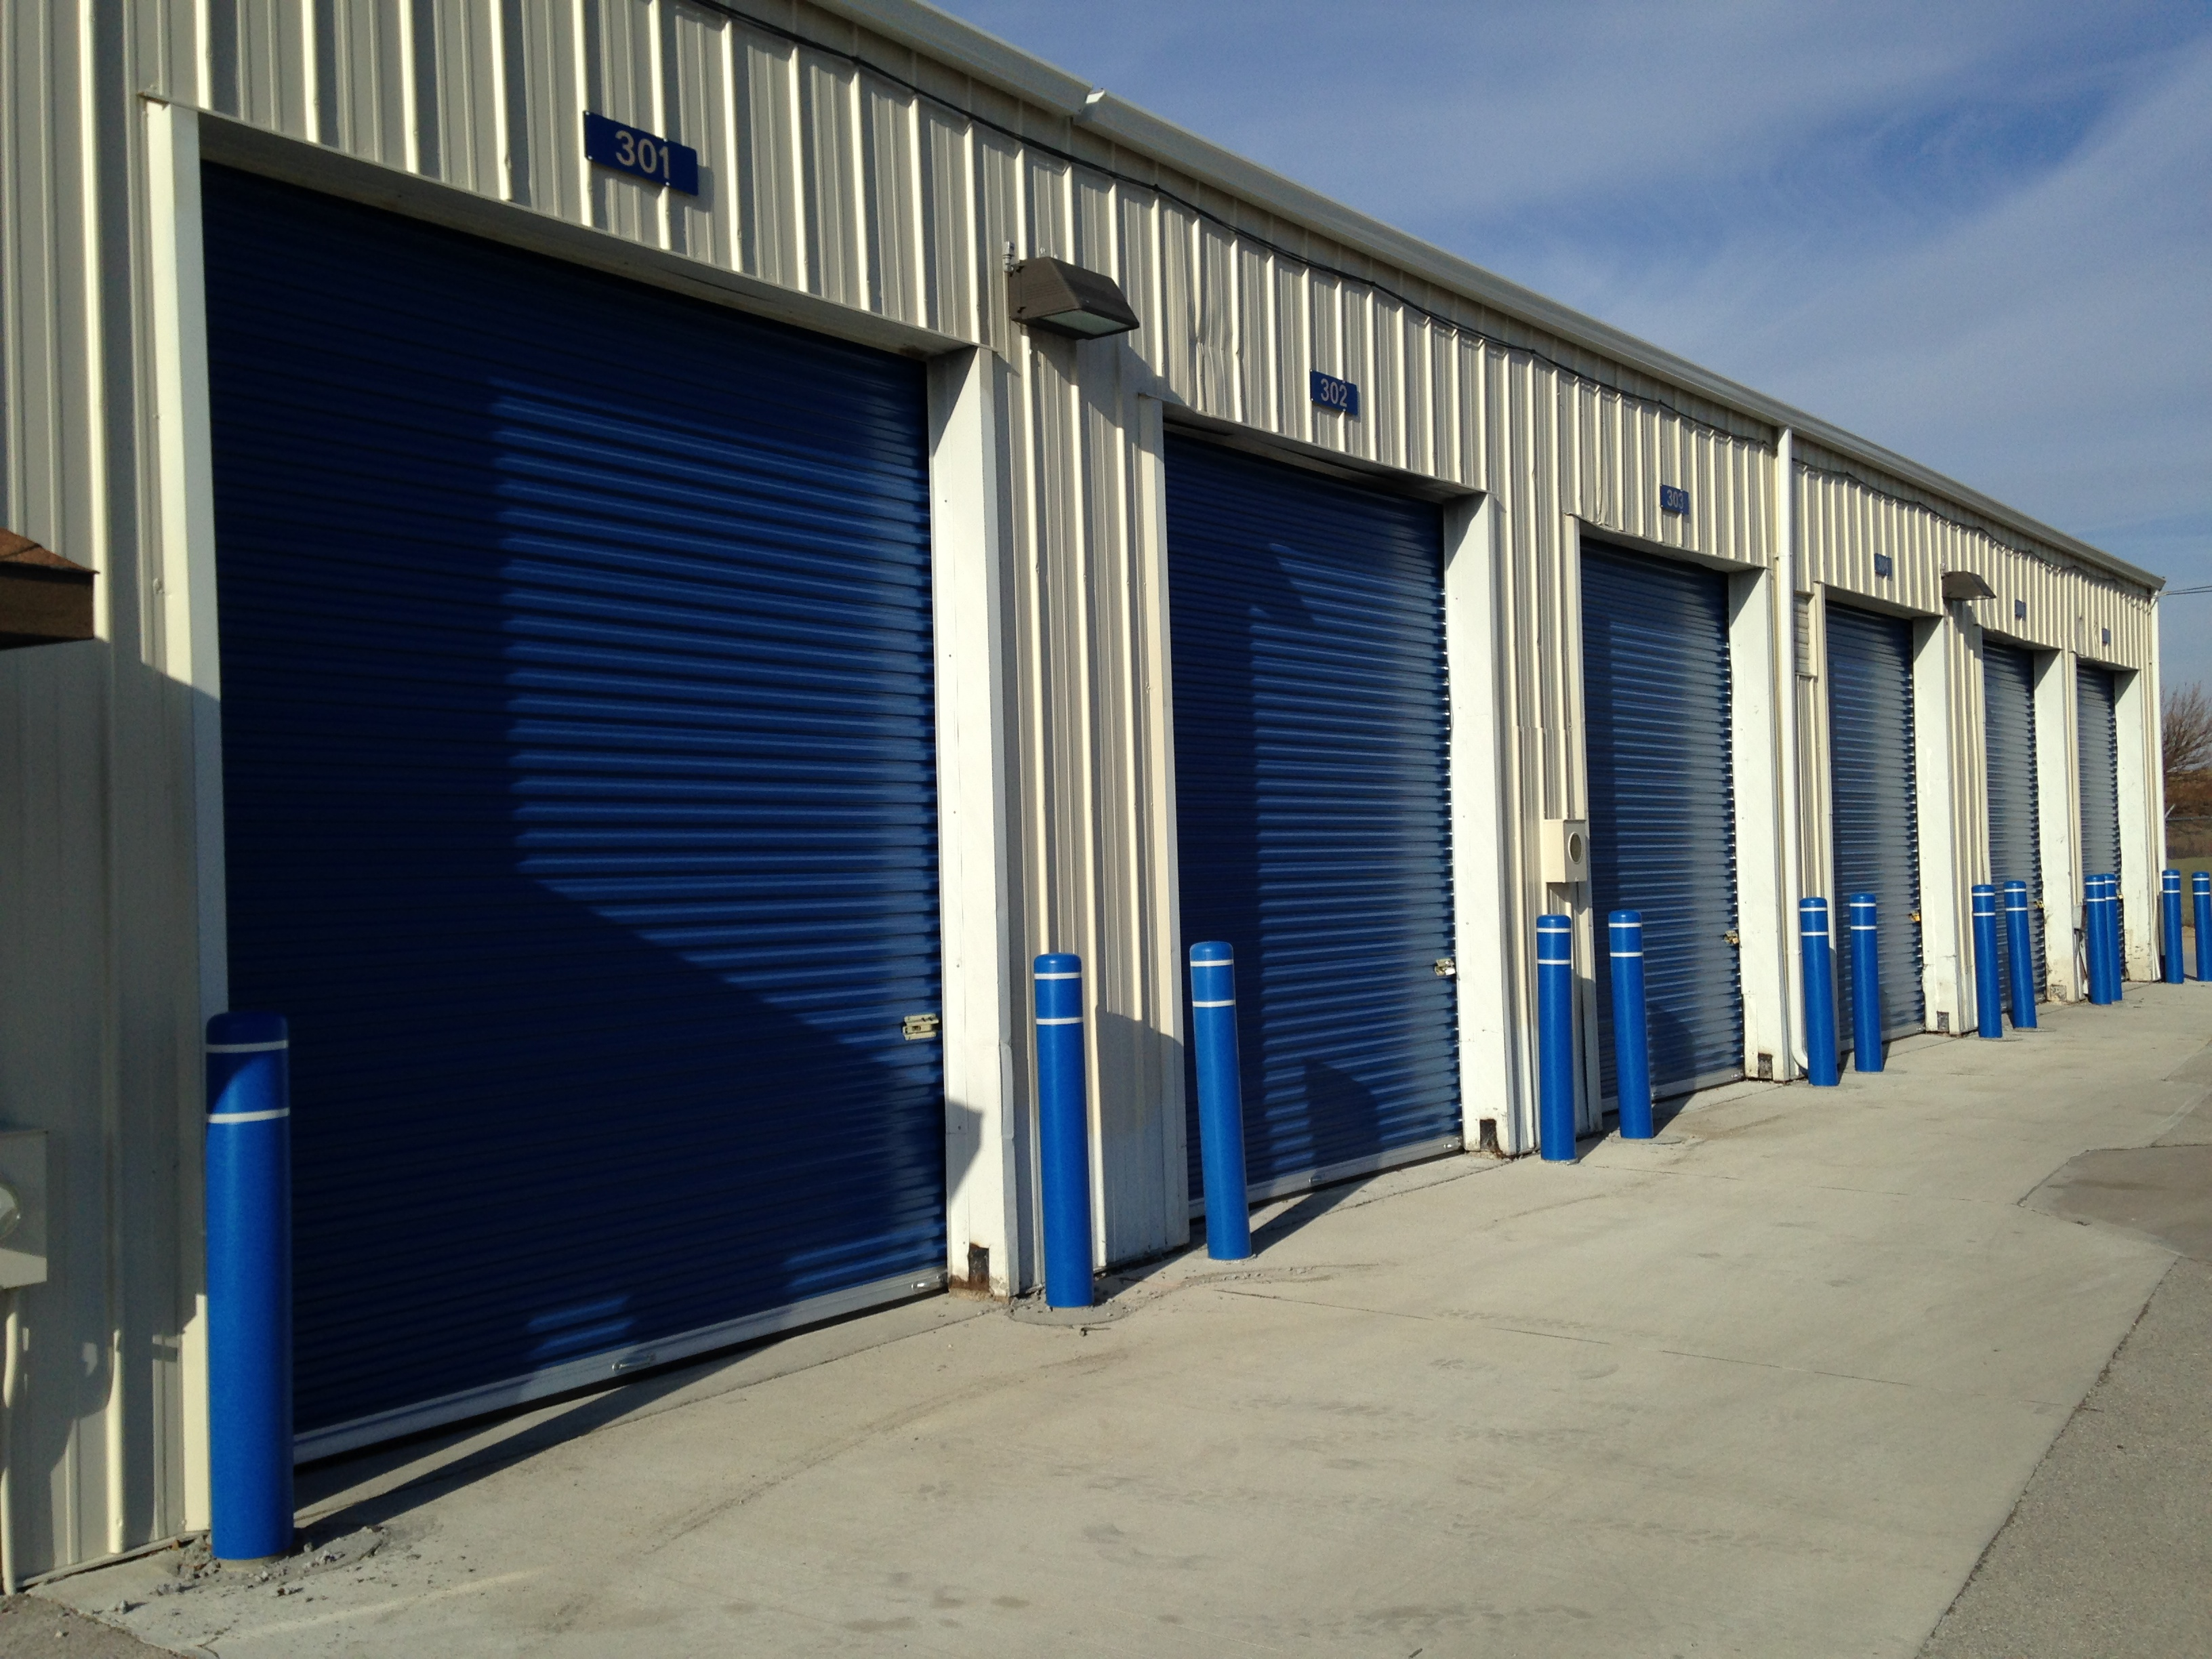 Brand new high bay 10' x 12' steel storage access doors. Fantastic drive up access! Interior lighting is included.